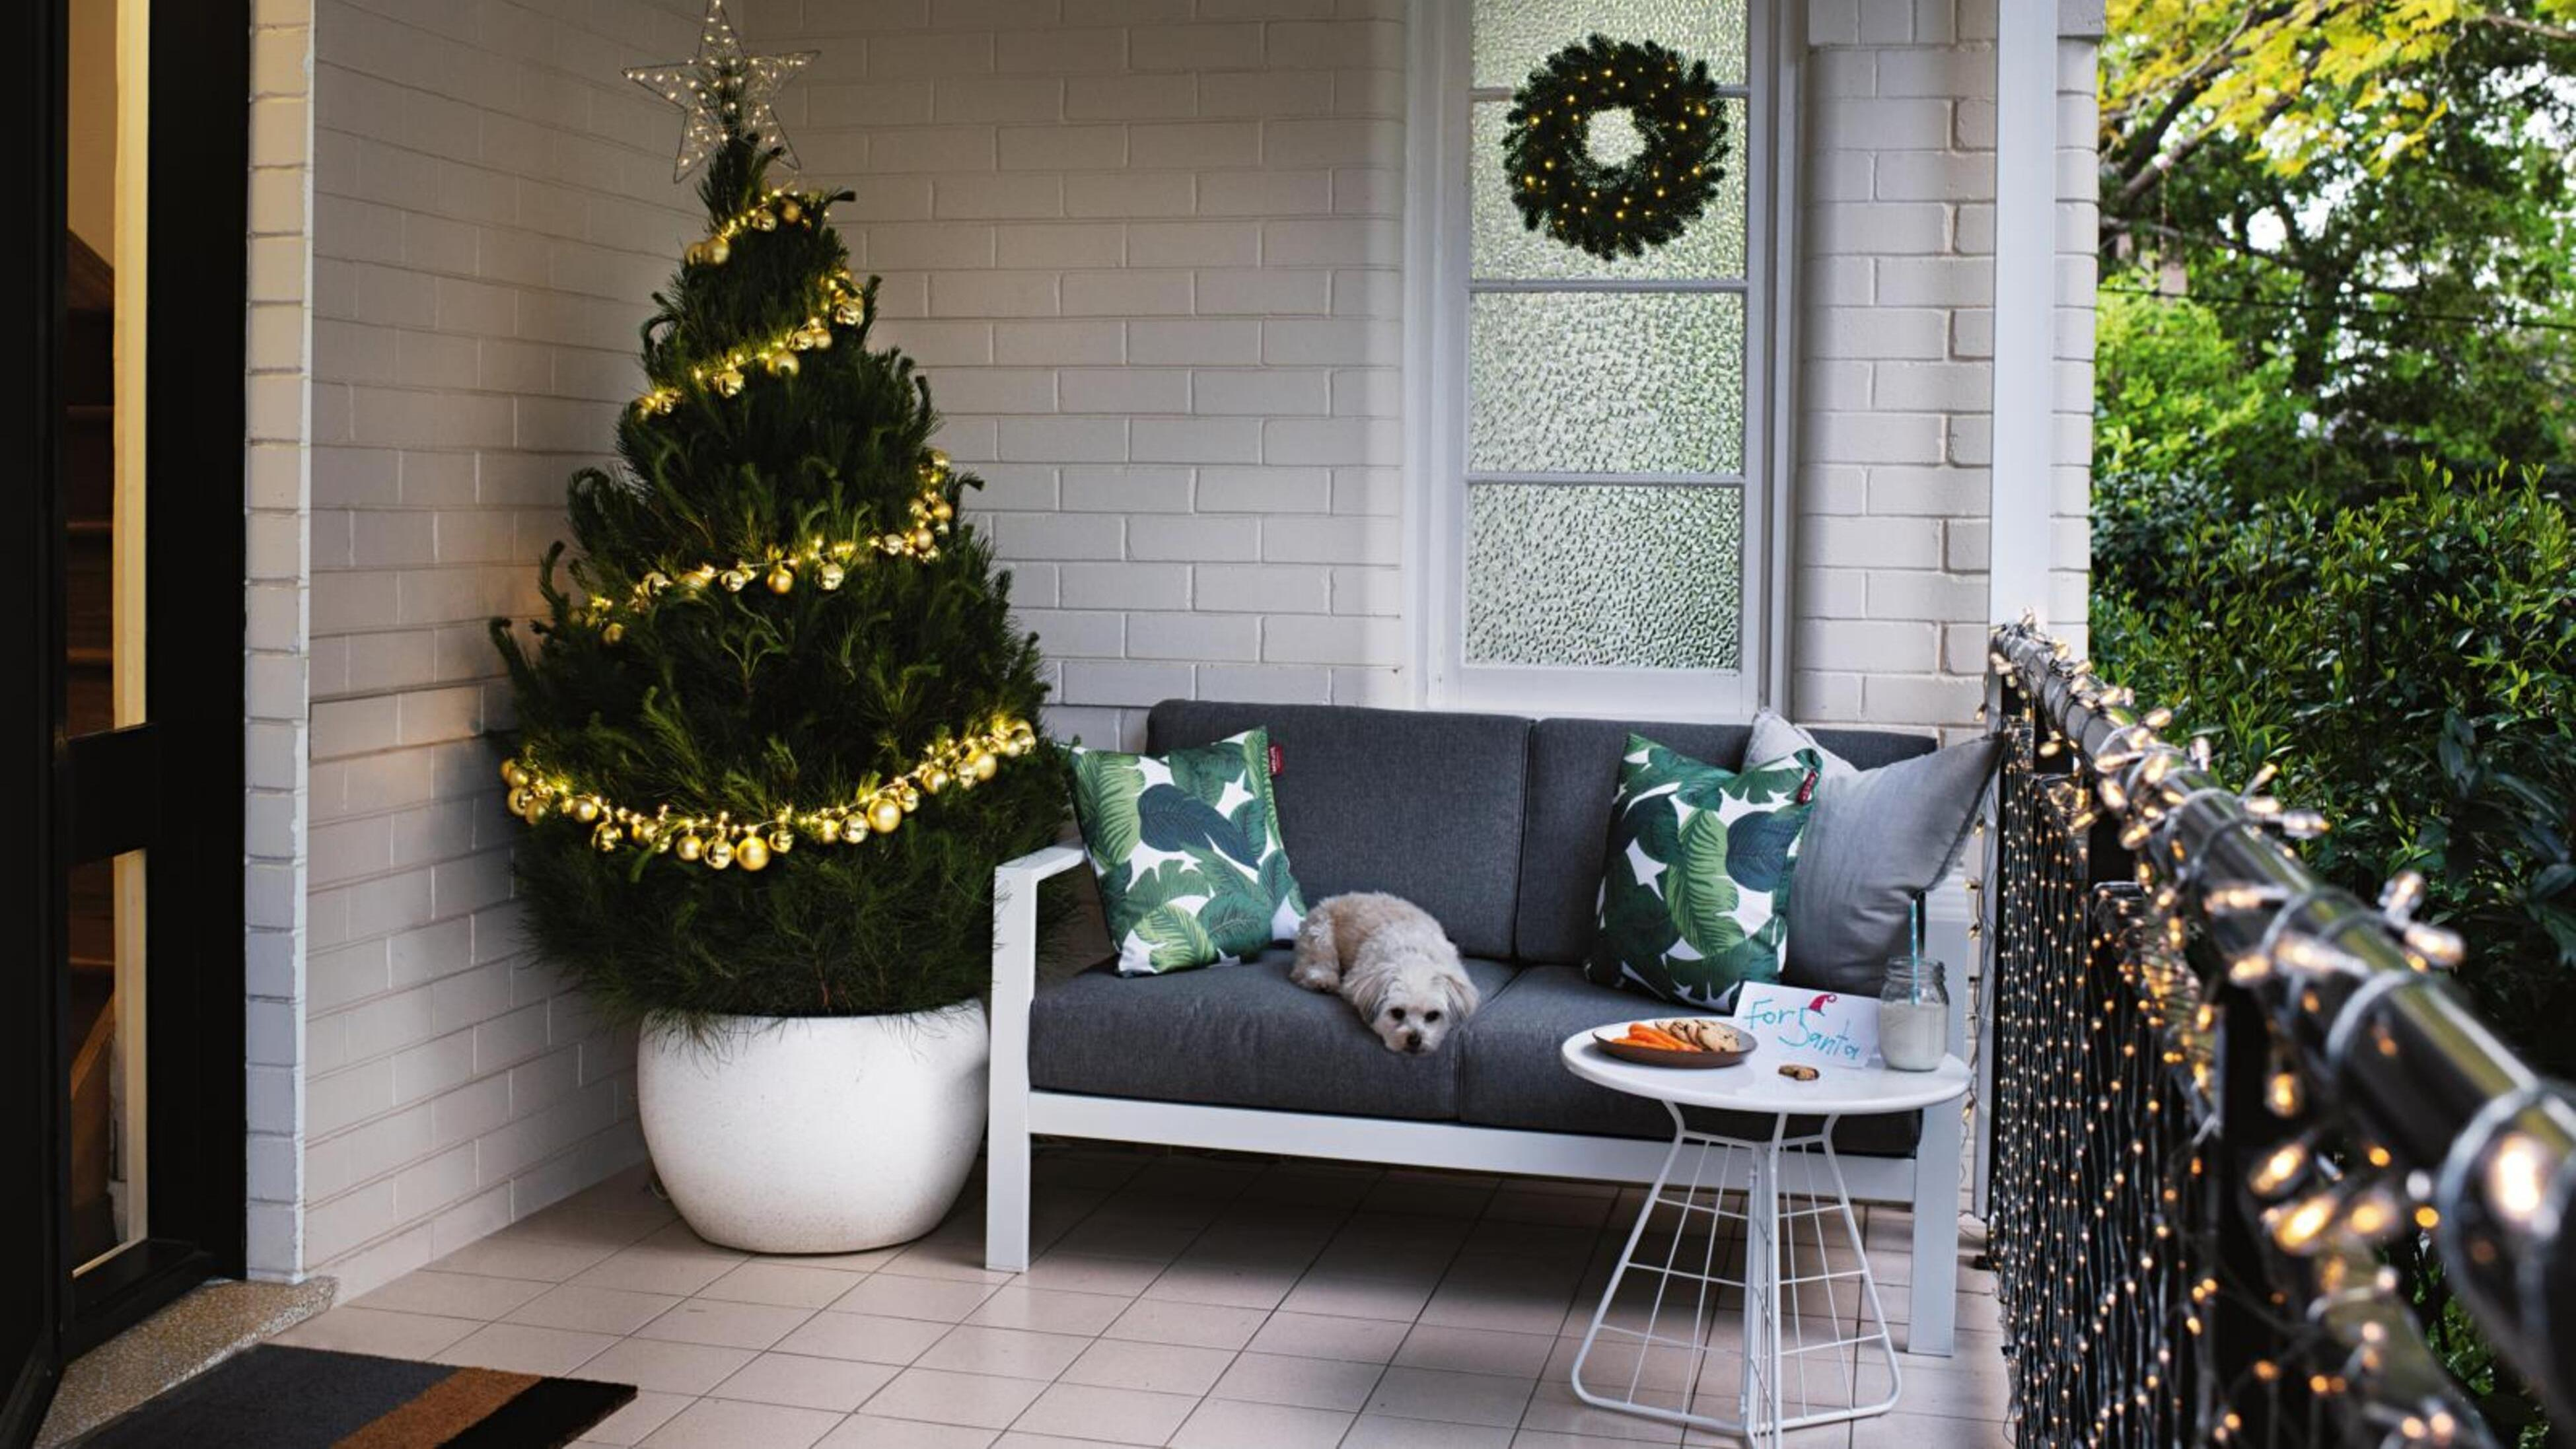 Christmas tree, couch, dog on balcony.